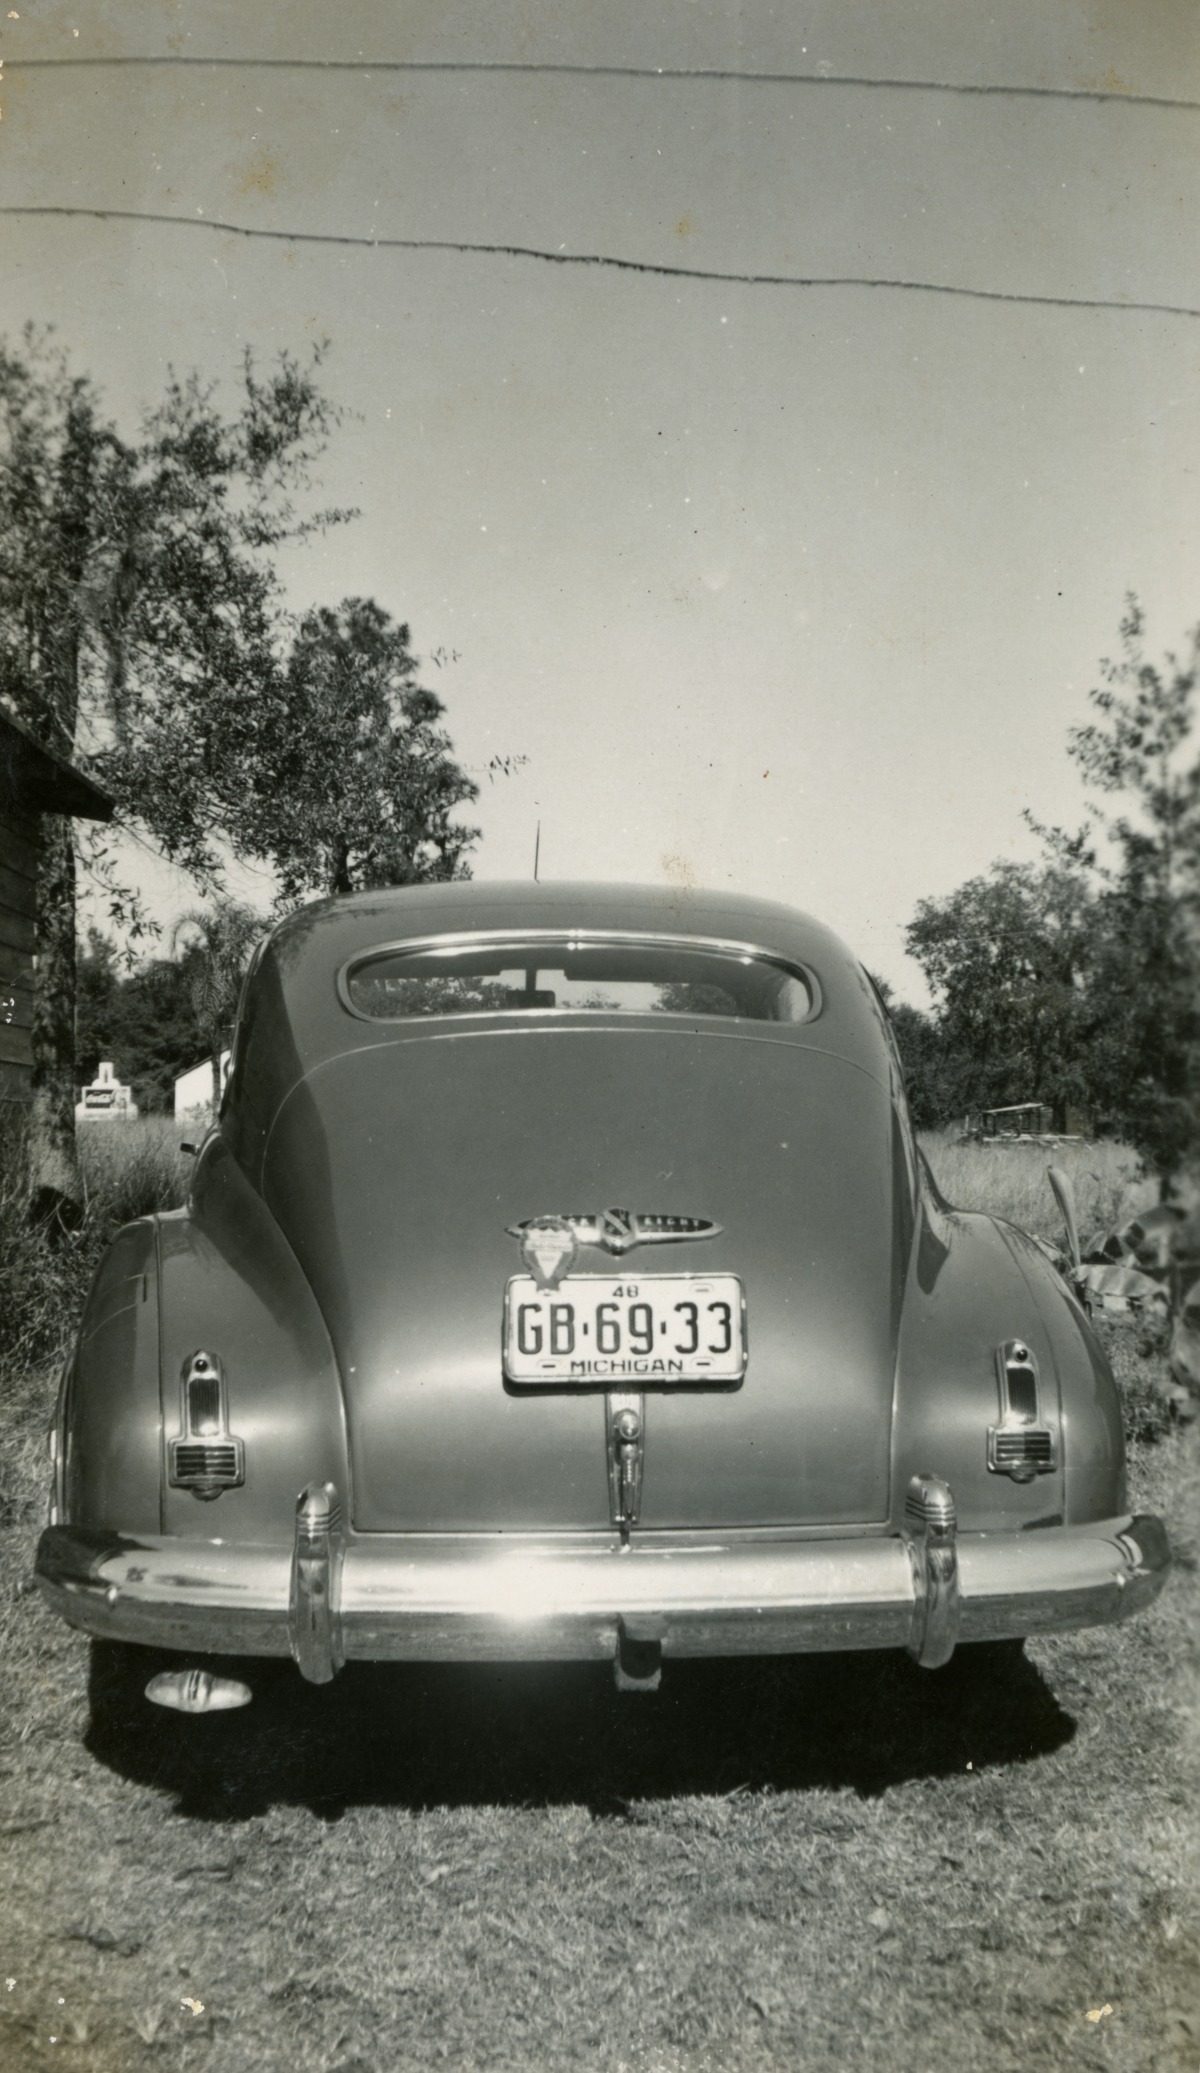 Rear of 1947 Buick eight special sedanette shown during Central Florida vacation of the Hall family from Michigan.